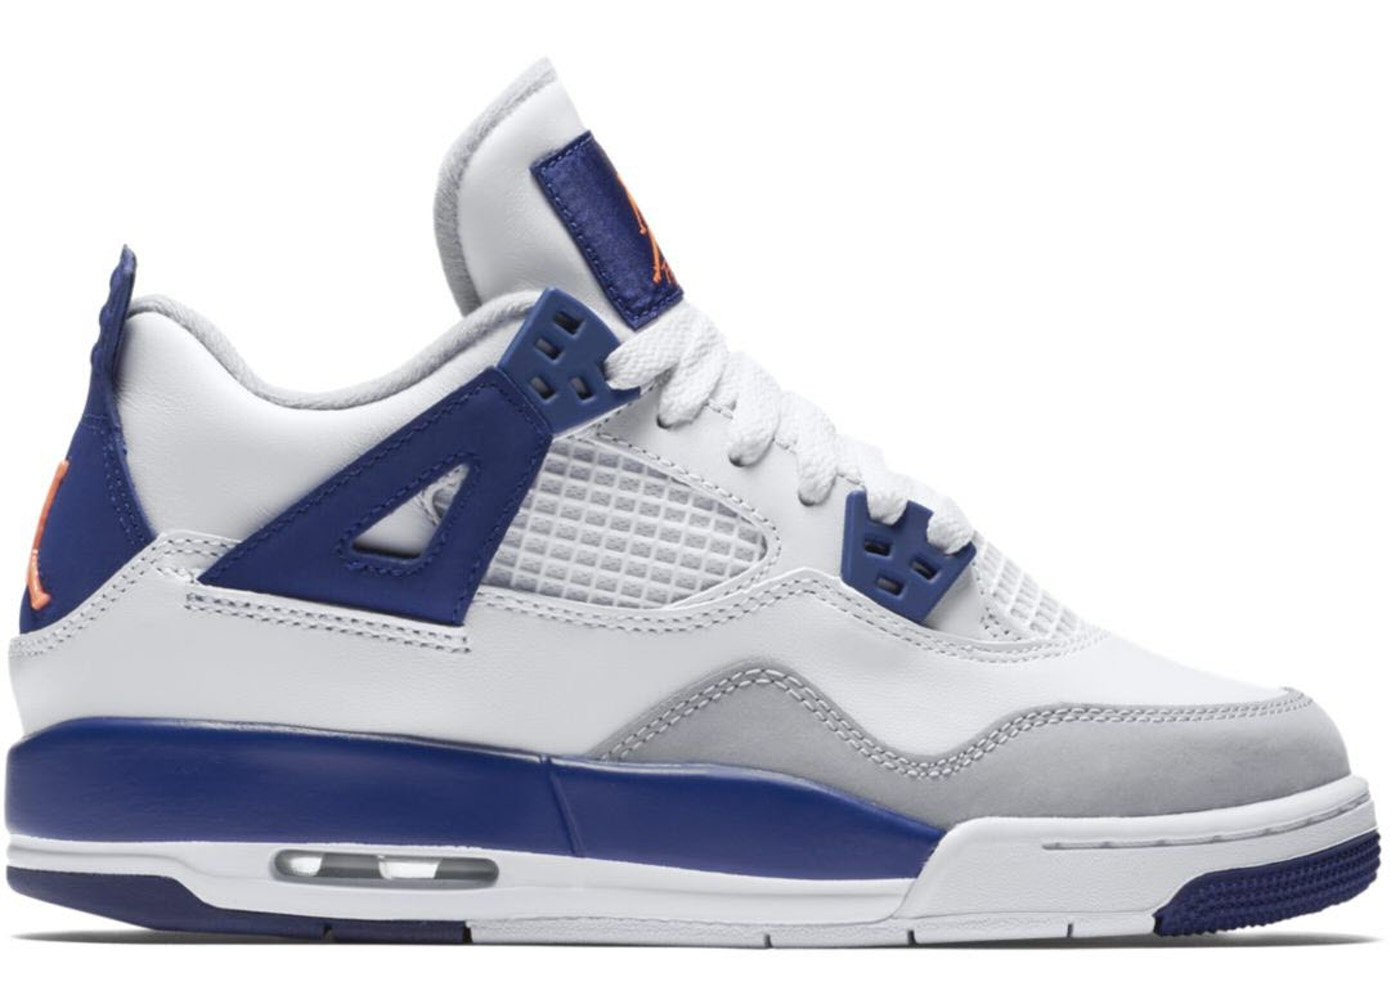 77588f9ad7658a Jordan 4 Retro Deep Royal Blue (GS) - 487724-132